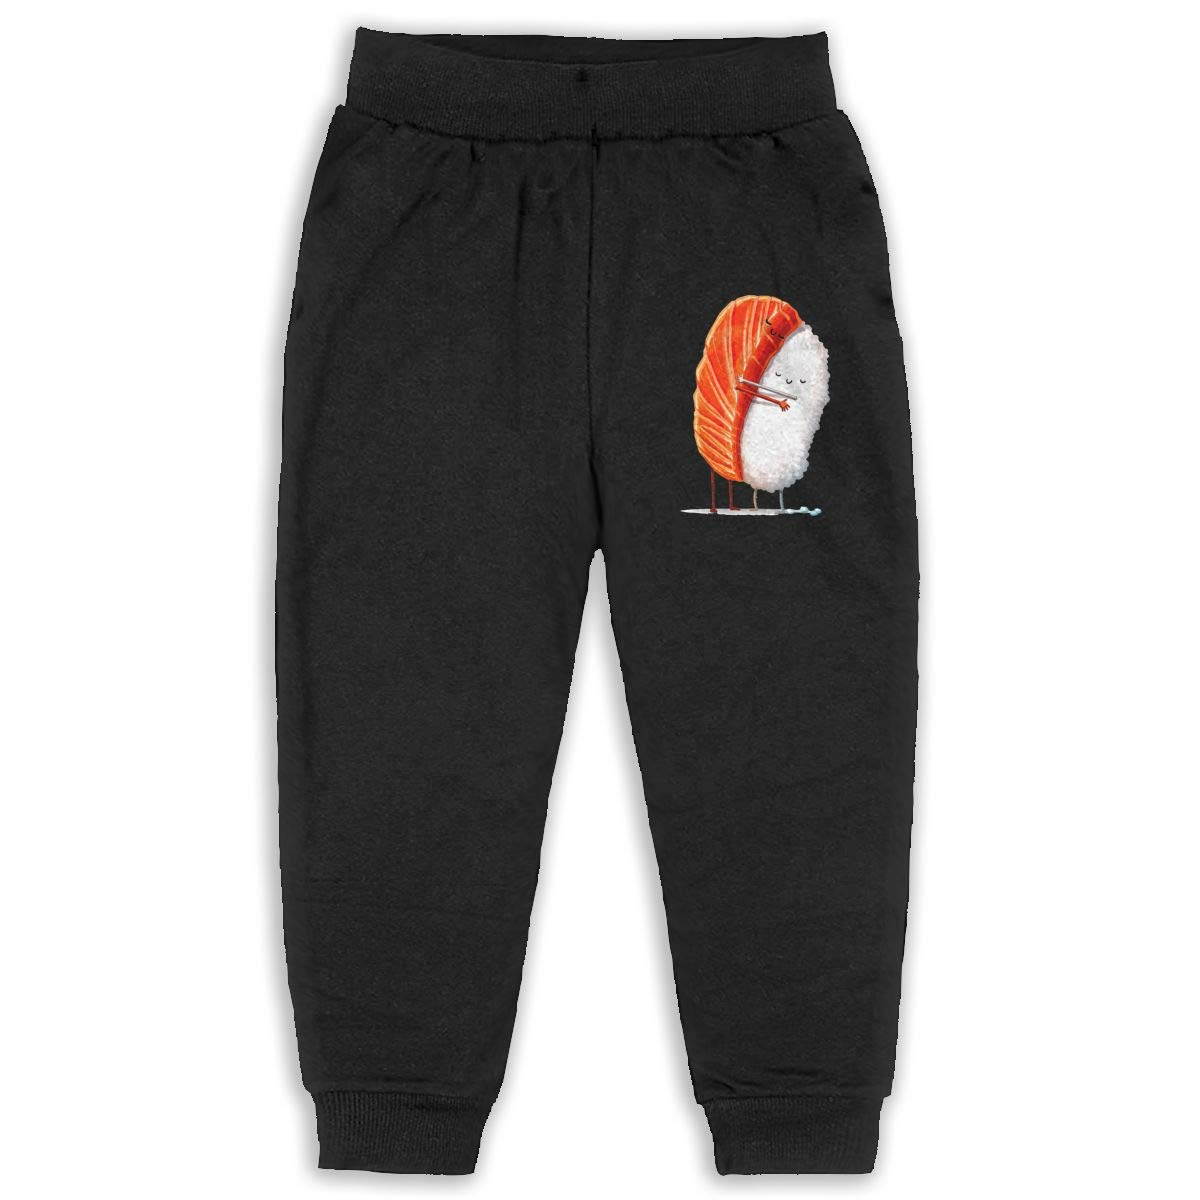 Never-Cold Sushi Hug Funny Maguro Toddler Boys Cotton Sweatpants Elastic Waist Pants for 2T-6T